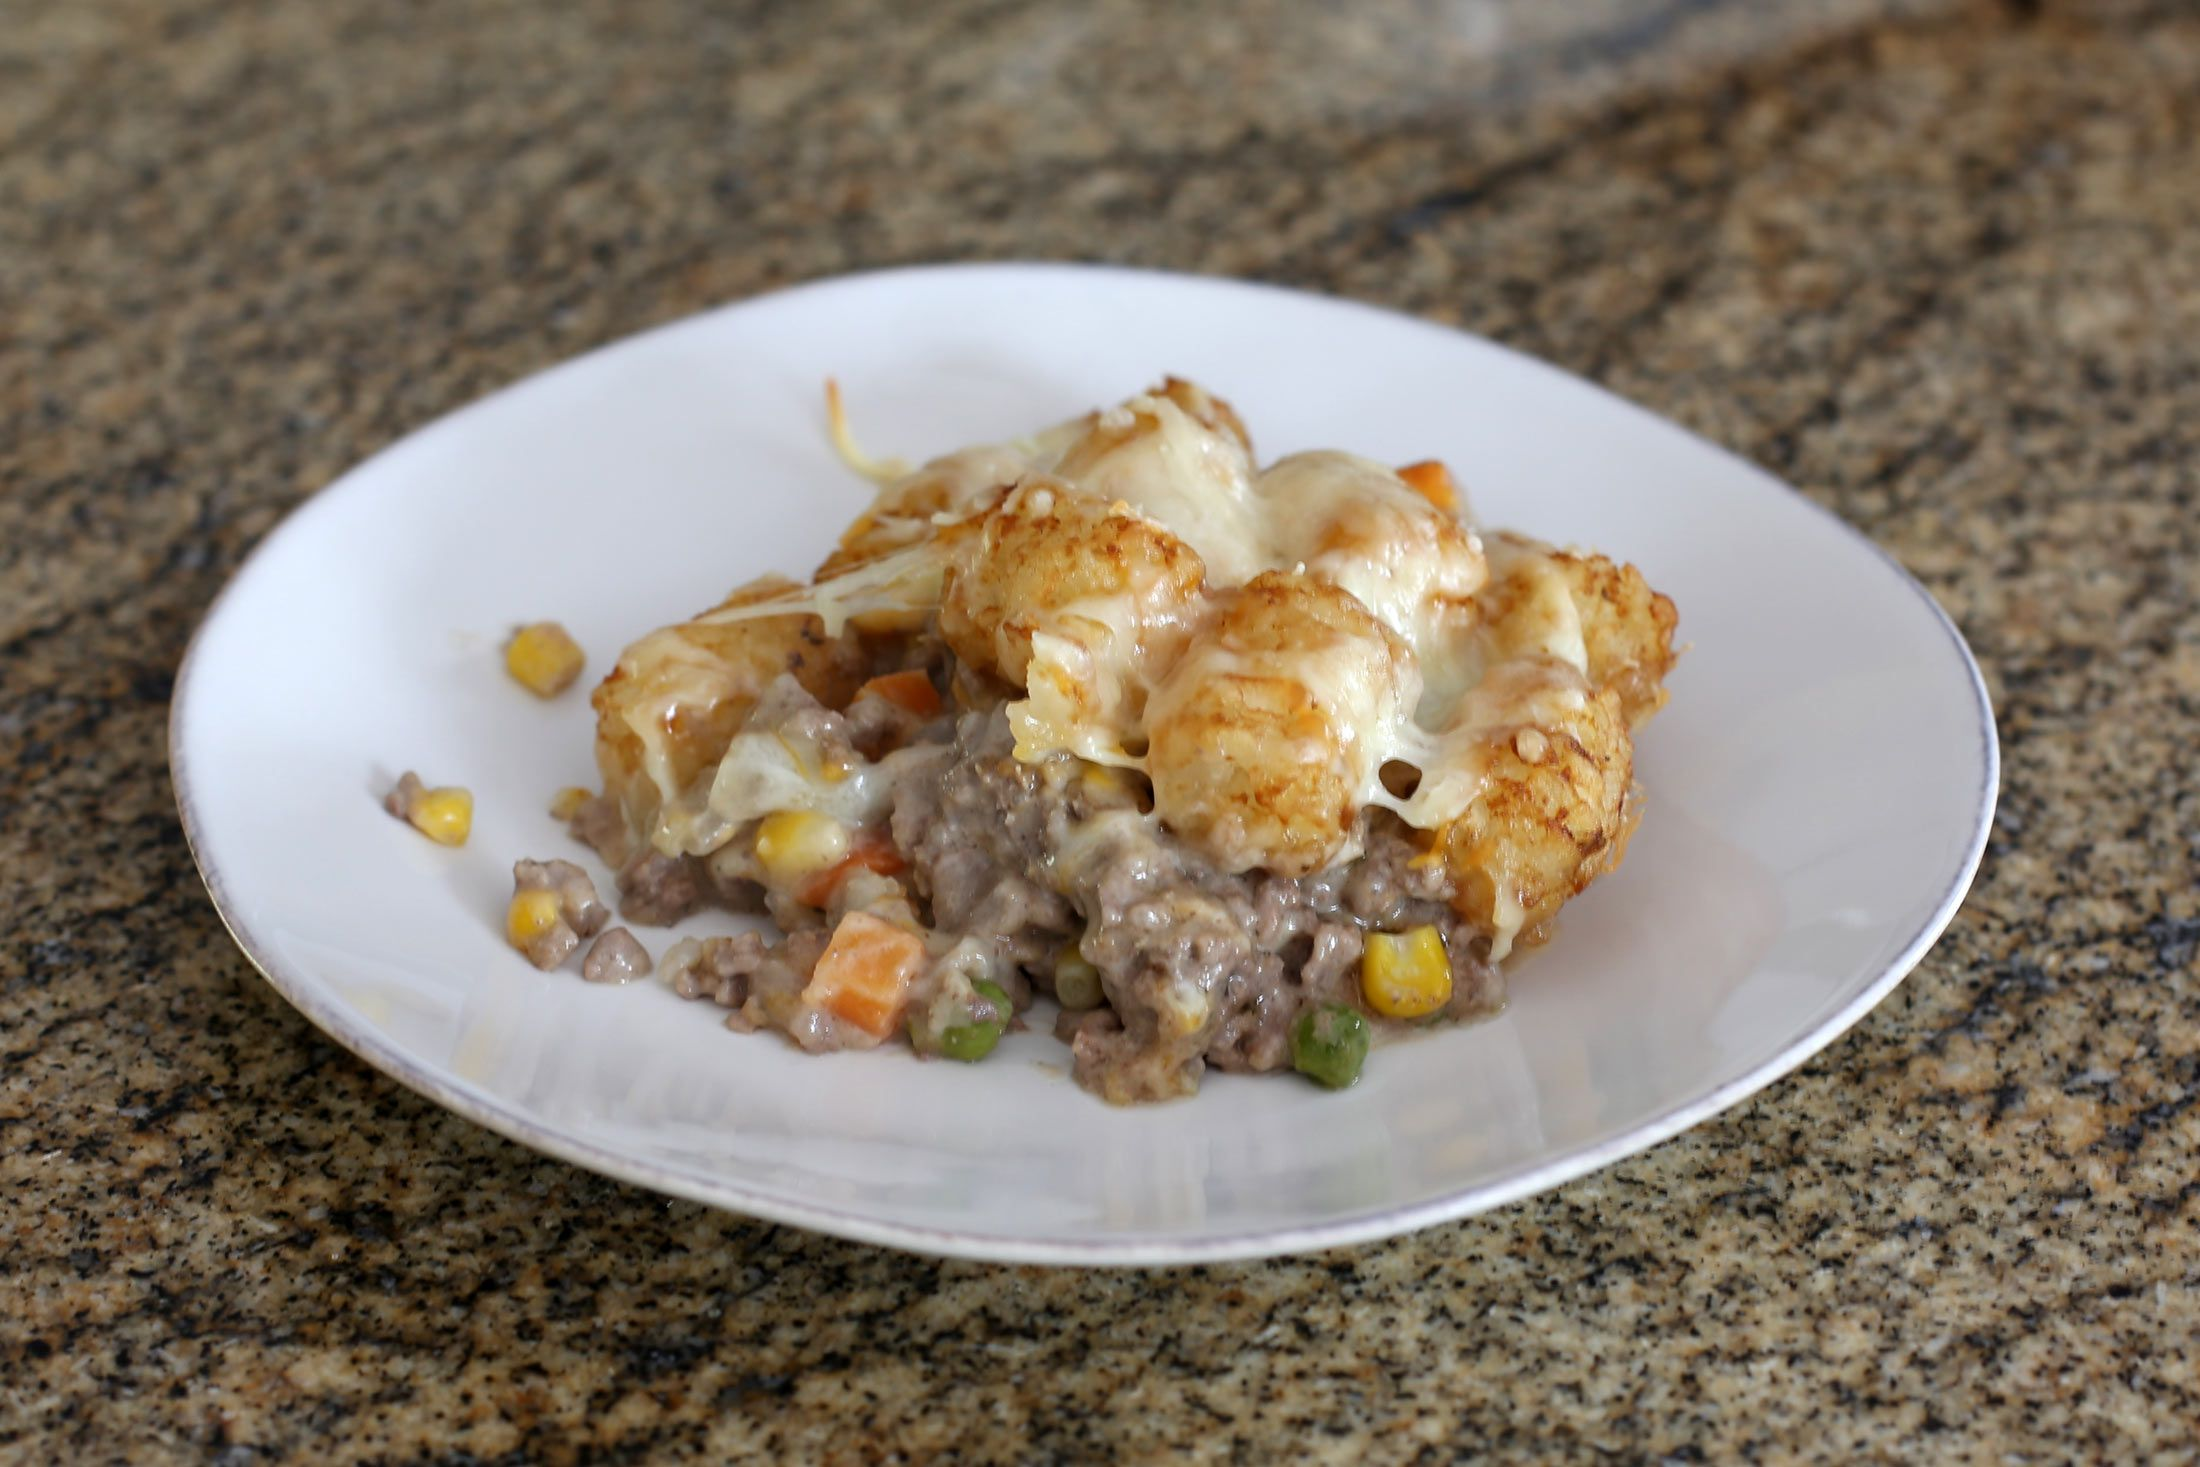 This Tater Tot casserole is our kid's ALL TIME FAVORITE meal and we love it too! It is SO easy to throw together and its a good one to let little ones help with.